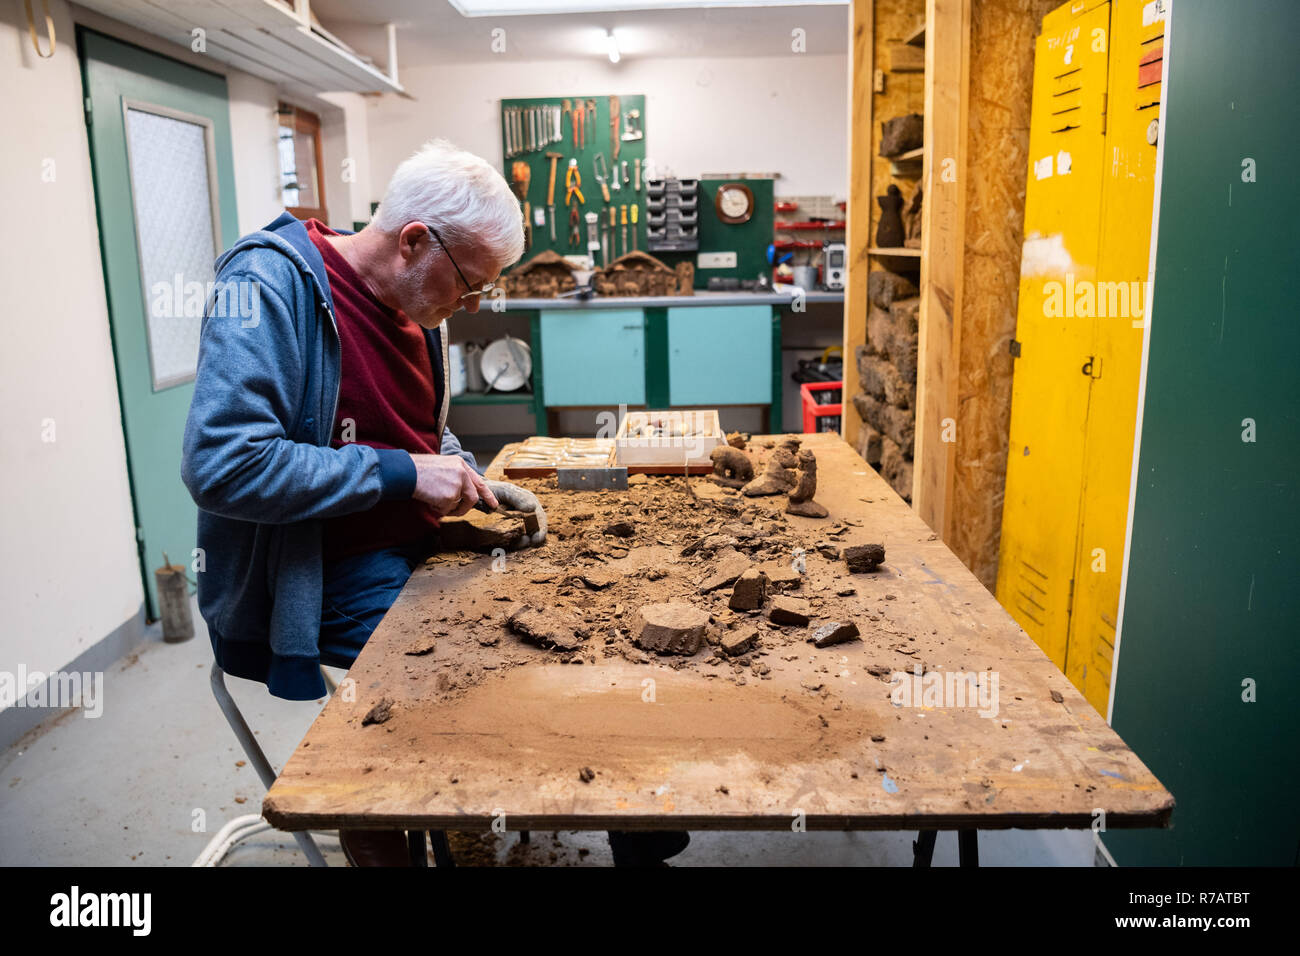 "Saterland, Germany. 22nd Nov, 2018. Karl-Heinz Brinkmann carves a Christmas figure from peat in his home workshop. The 64 year old Saterland artist works with many materials. But the dried white peat is special: it is 2000 years old. (to dpa ""2000 years old: Christmas cribs from peat"" from 09.12.2018) Credit: Mohssen Assanimoghaddam/dpa/Alamy Live News Stock Photo"